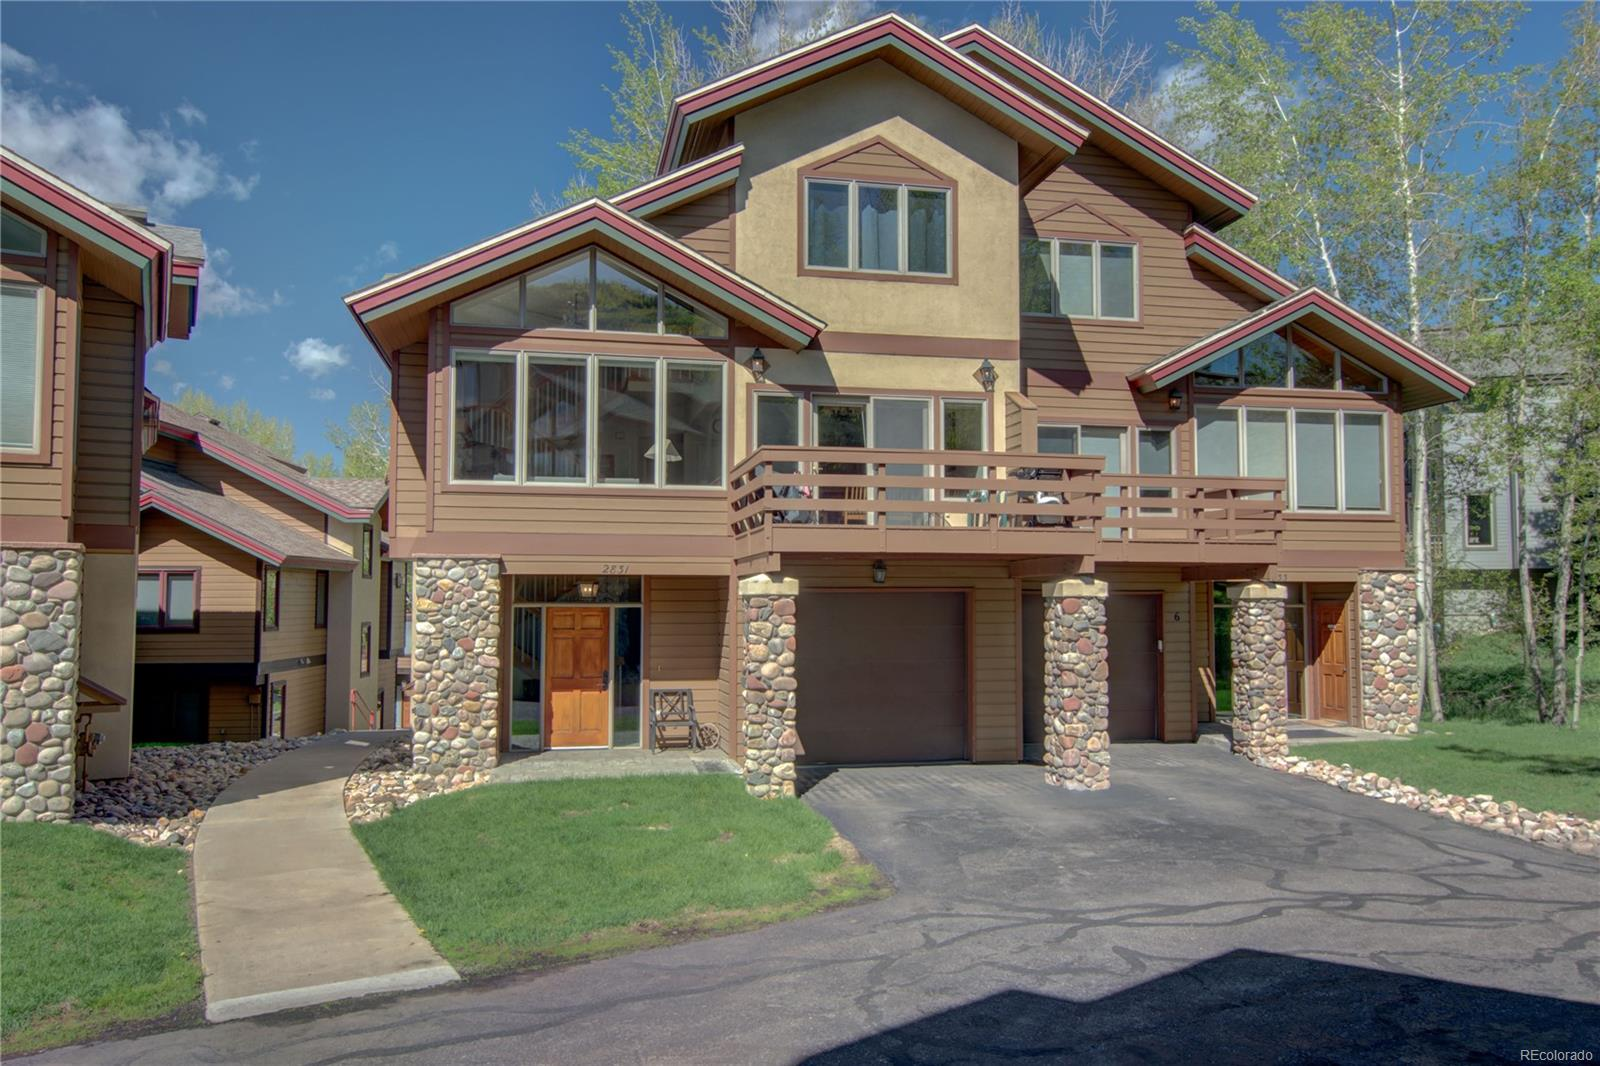 2831 Kitzbuhel Court, Steamboat Springs, CO 80487 - Steamboat Springs, CO real estate listing